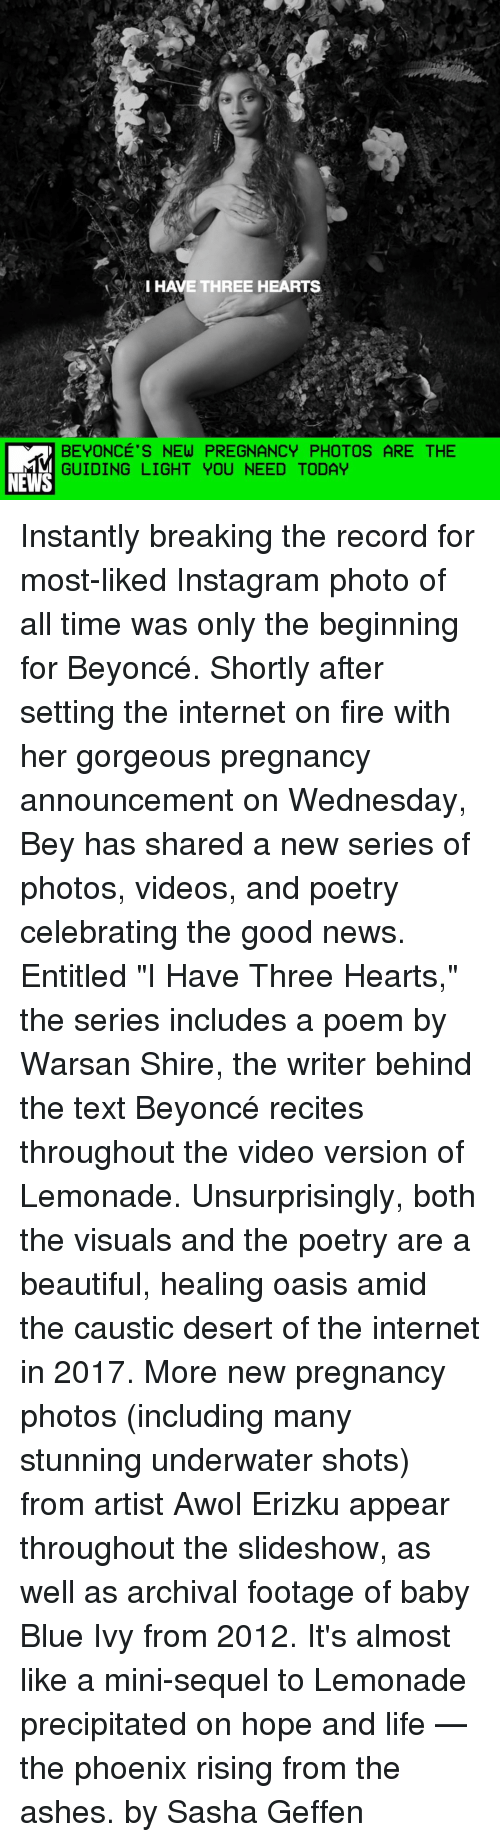 "guid: VI HAVE THREE HEARTS  BEYONCE'S NEW PREGNANCY PHOTOS ARE THE  GUIDING LIGHT YOU NEED TODAY  NEWS Instantly breaking the record for most-liked Instagram photo of all time was only the beginning for Beyoncé. Shortly after setting the internet on fire with her gorgeous pregnancy announcement on Wednesday, Bey has shared a new series of photos, videos, and poetry celebrating the good news. Entitled ""I Have Three Hearts,"" the series includes a poem by Warsan Shire, the writer behind the text Beyoncé recites throughout the video version of Lemonade. Unsurprisingly, both the visuals and the poetry are a beautiful, healing oasis amid the caustic desert of the internet in 2017. More new pregnancy photos (including many stunning underwater shots) from artist Awol Erizku appear throughout the slideshow, as well as archival footage of baby Blue Ivy from 2012. It's almost like a mini-sequel to Lemonade precipitated on hope and life — the phoenix rising from the ashes. by Sasha Geffen"